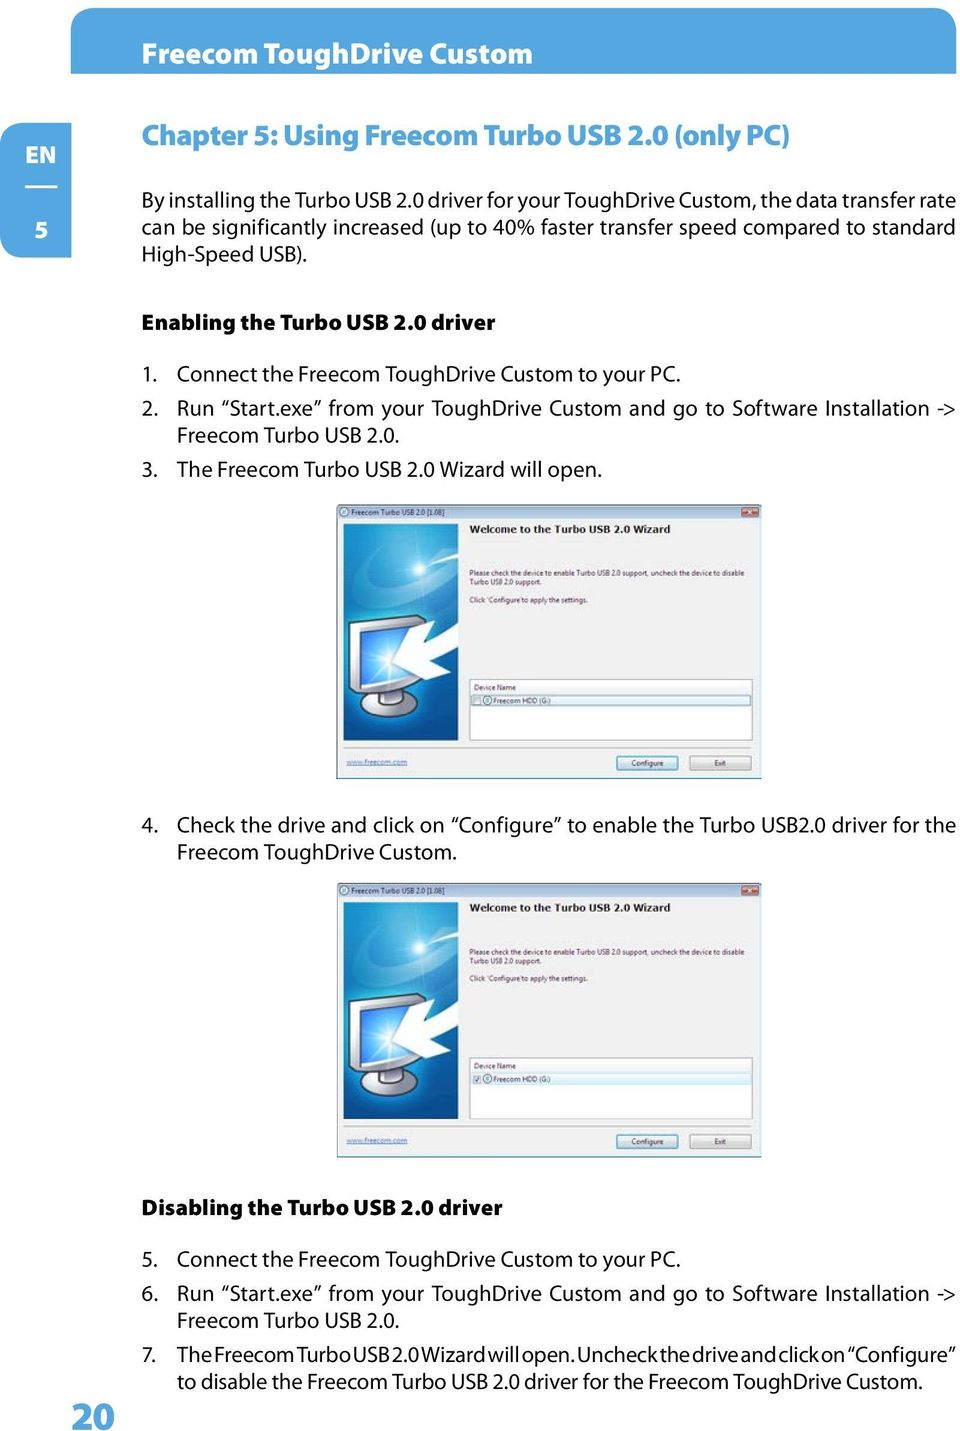 Connect the Freecom ToughDrive Custom to your PC. 2. Run Start.exe from your ToughDrive Custom and go to Software Installation -> Freecom Turbo USB 2.0. 3. The Freecom Turbo USB 2.0 Wizard will open.